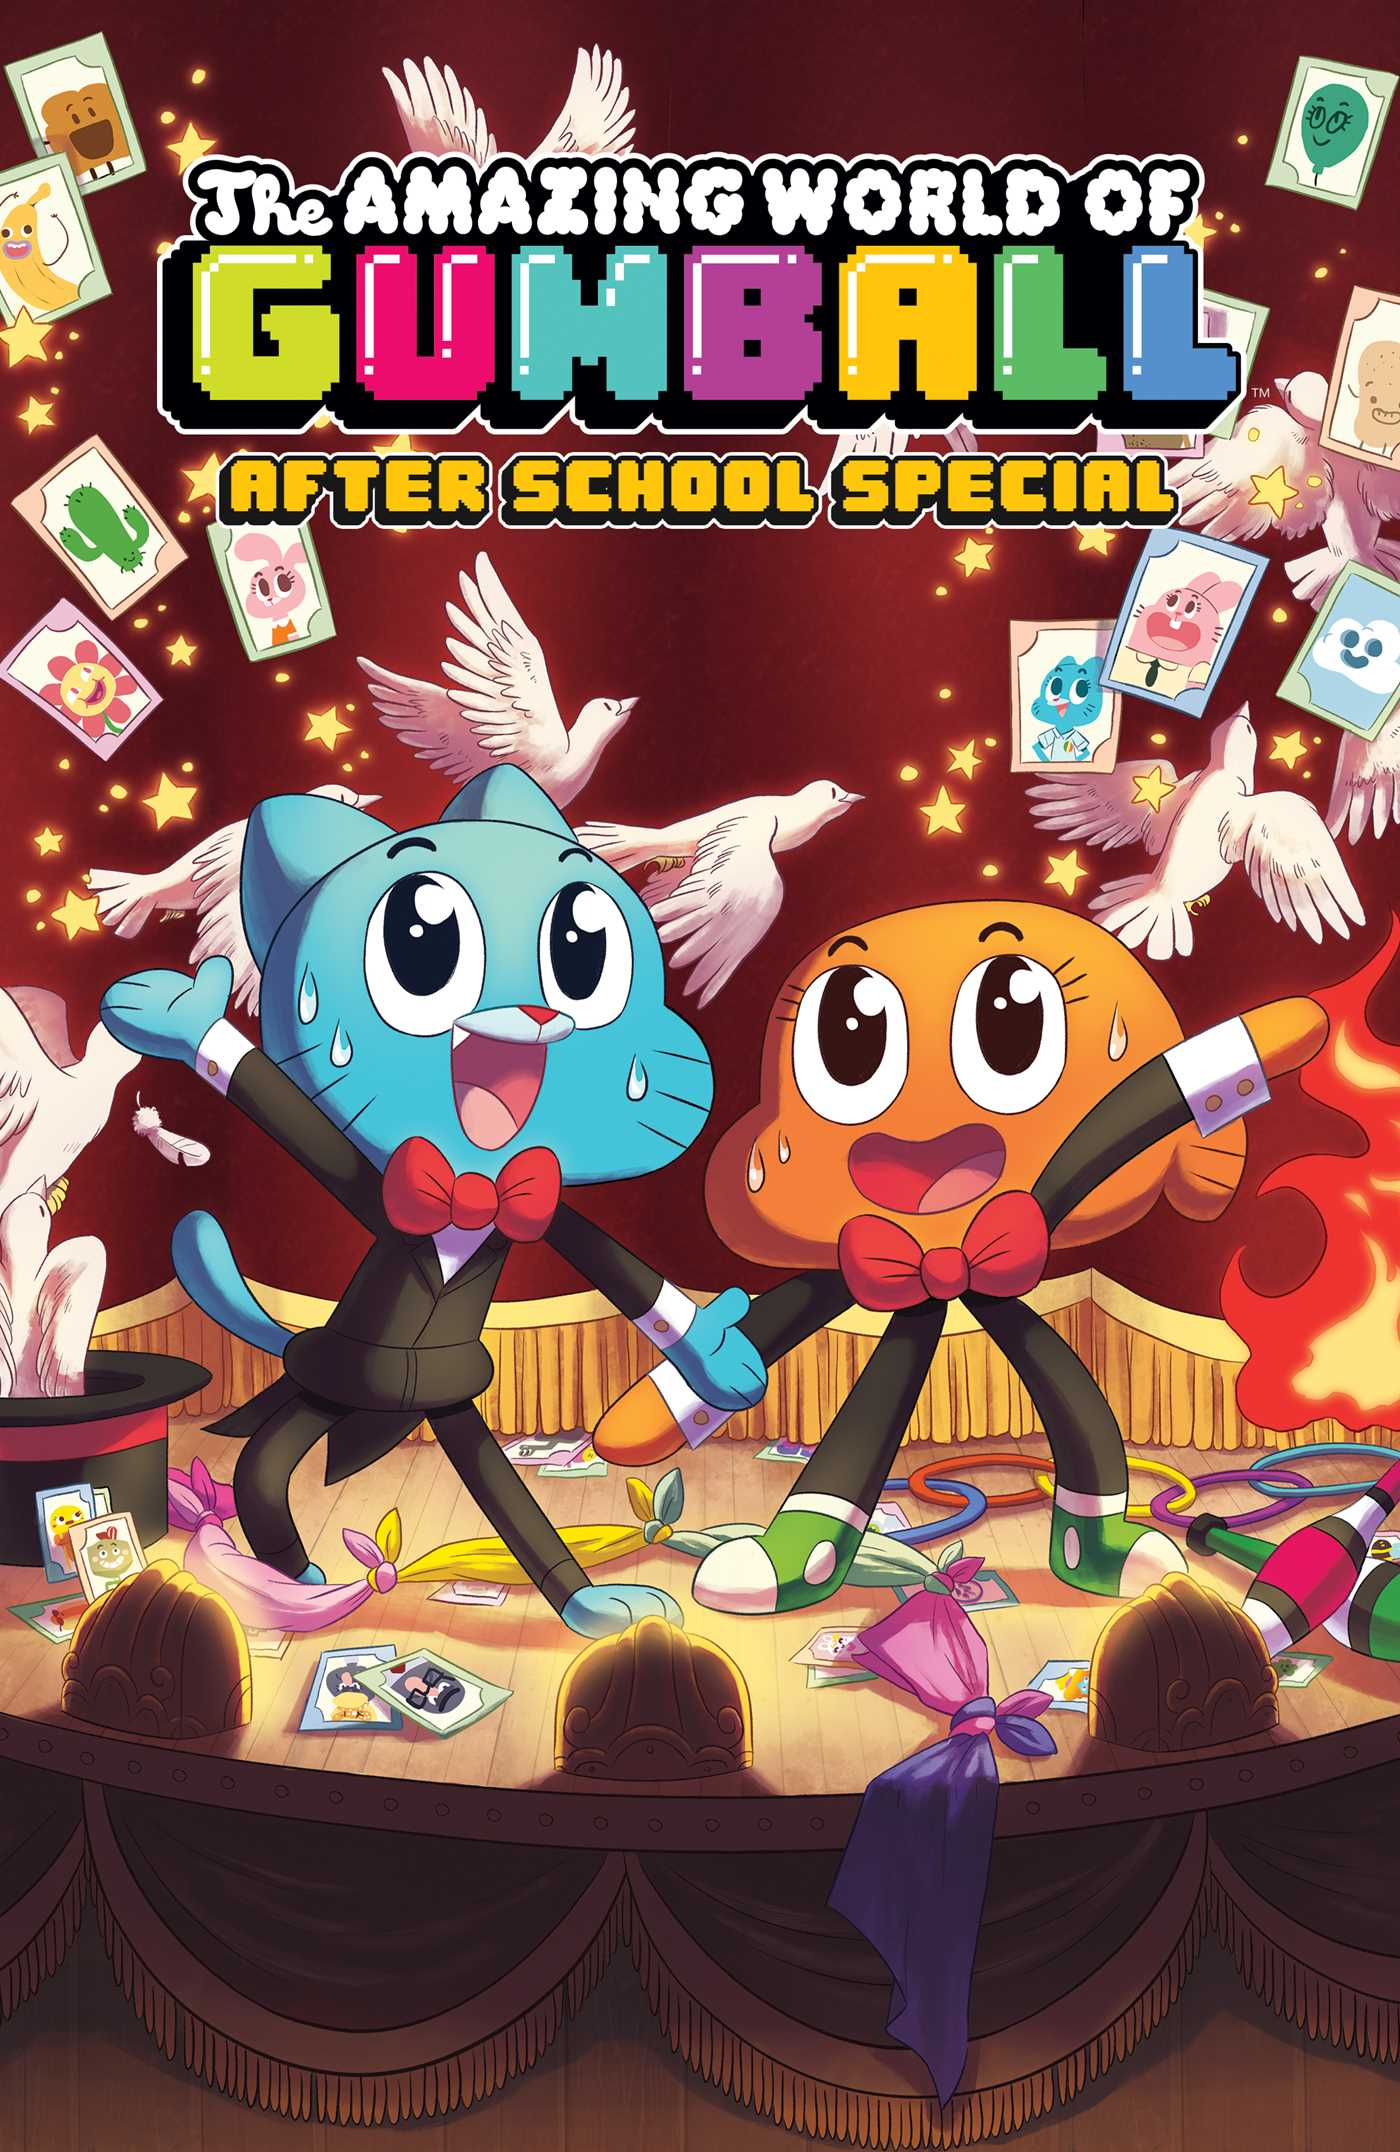 The Amazing World Of Gumball Penny